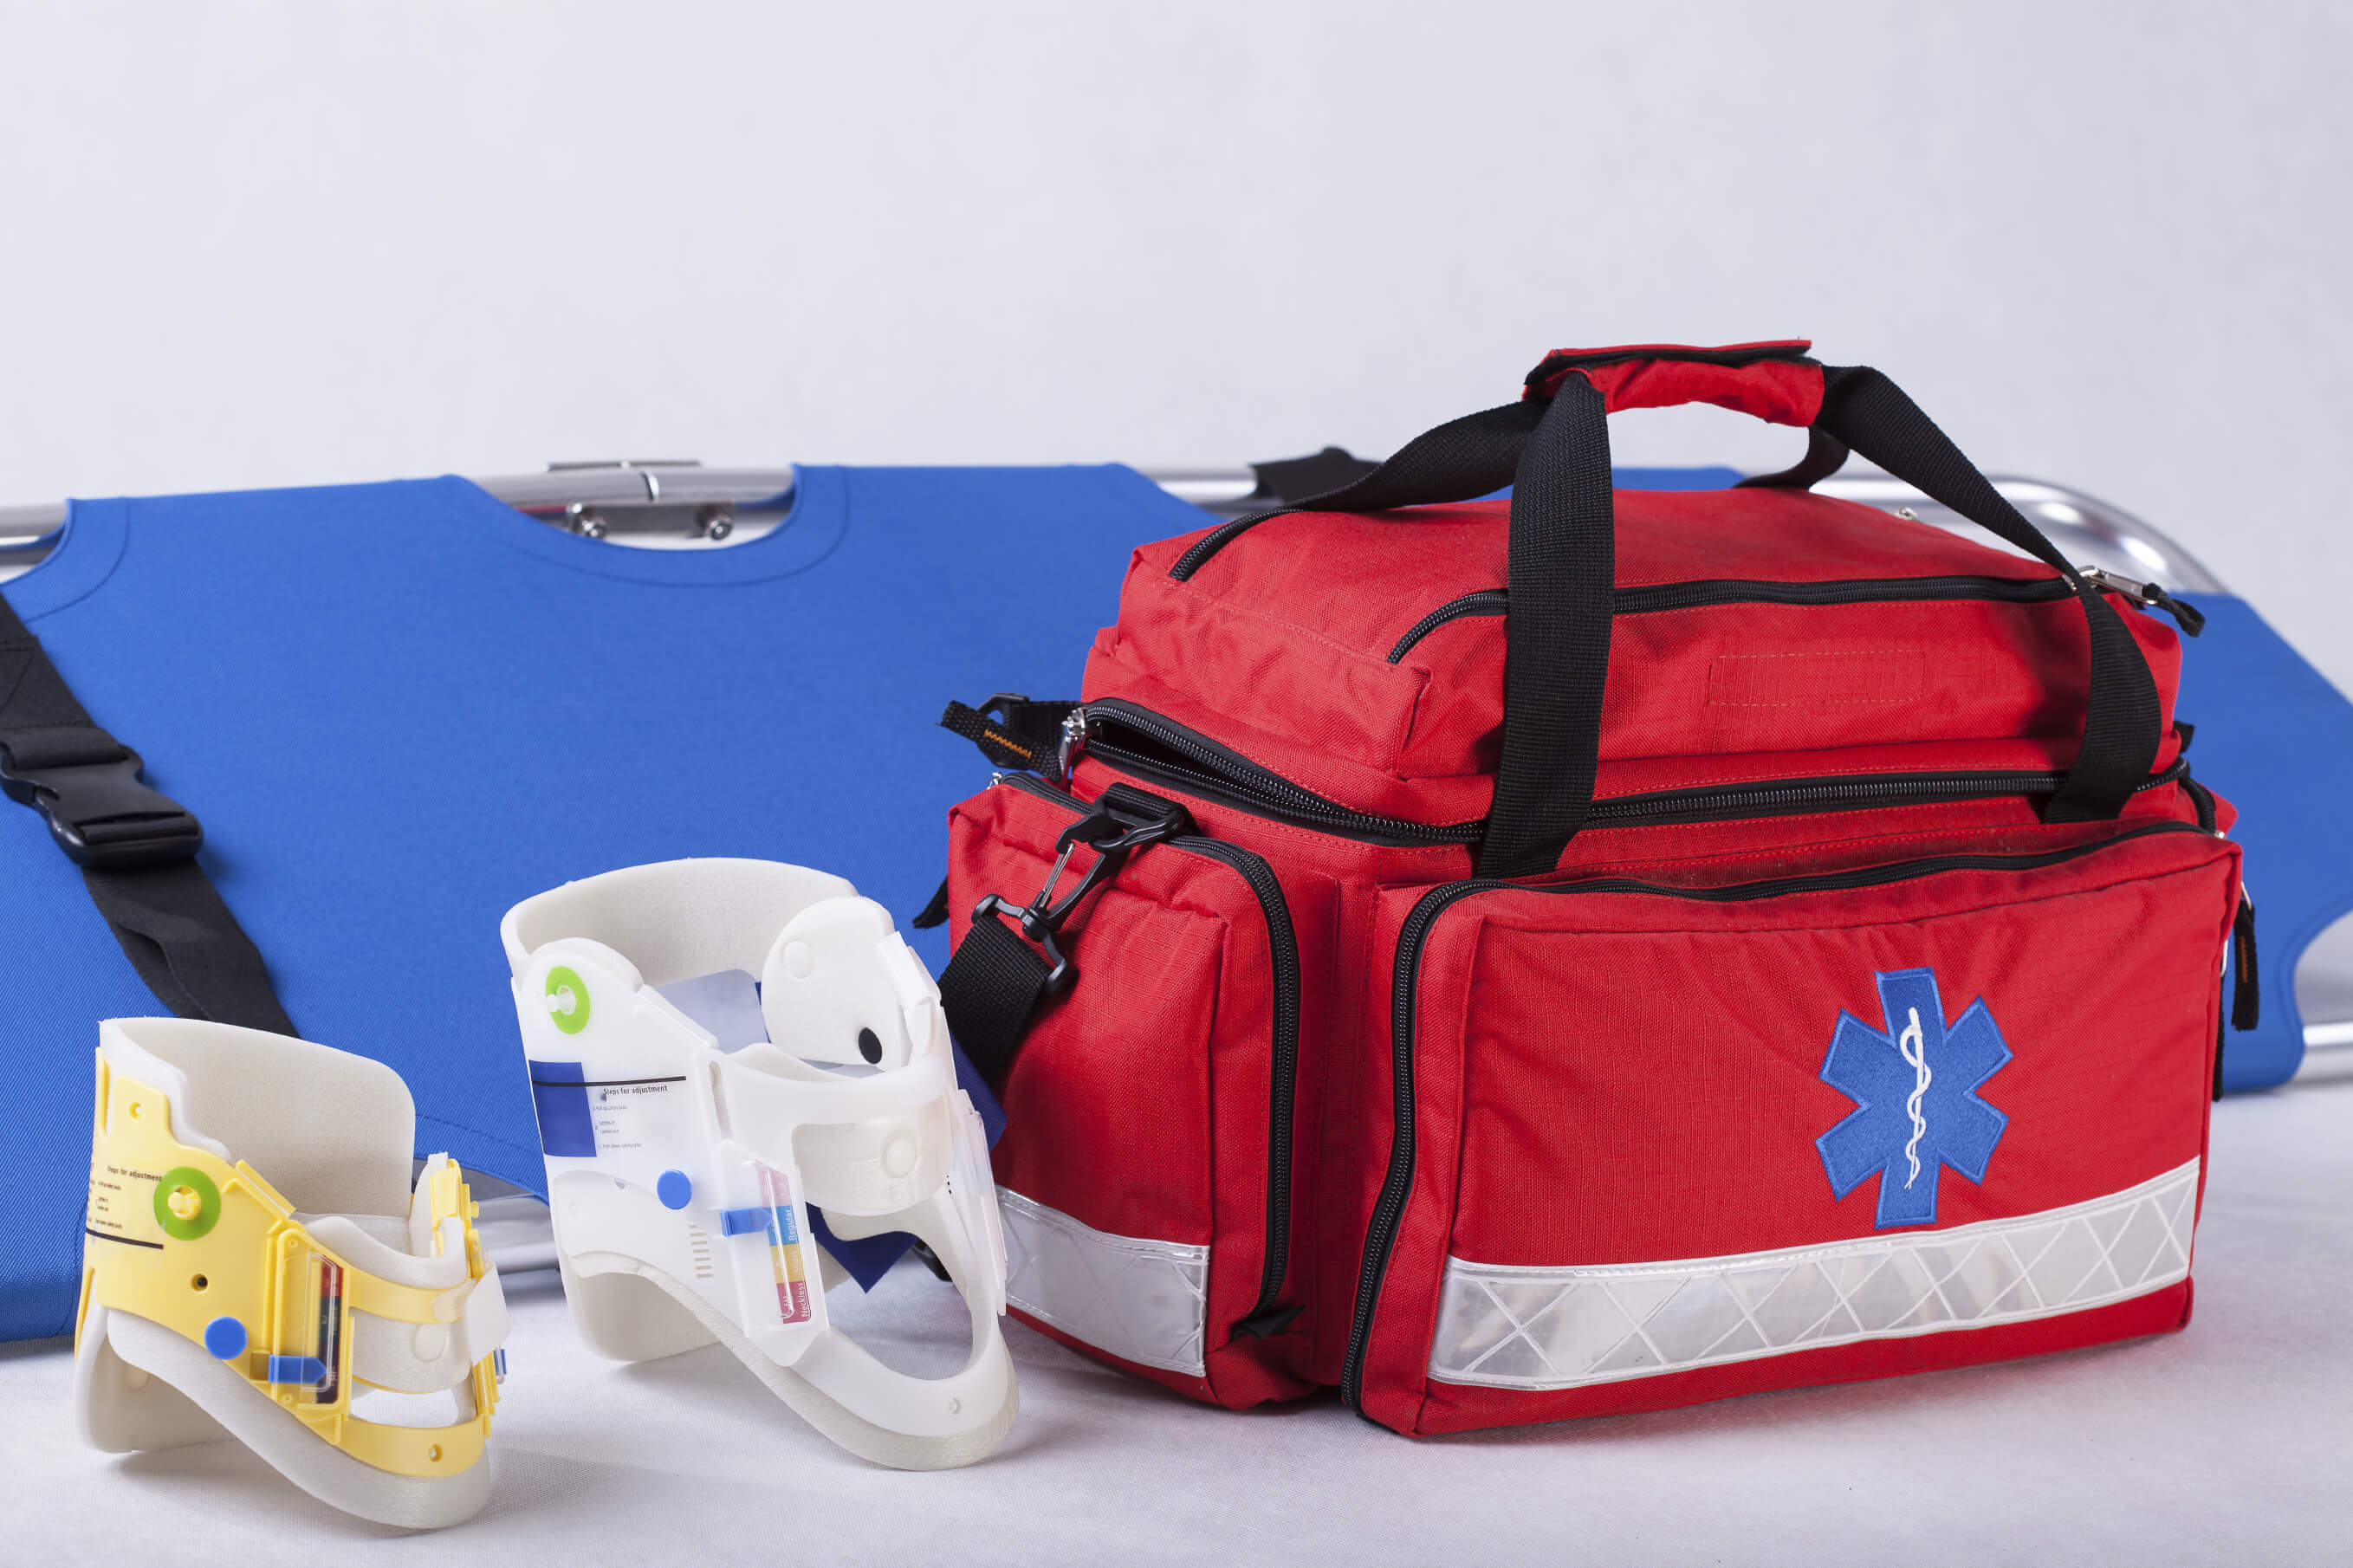 Rescue-bag-cervical-collars-and-stretcher